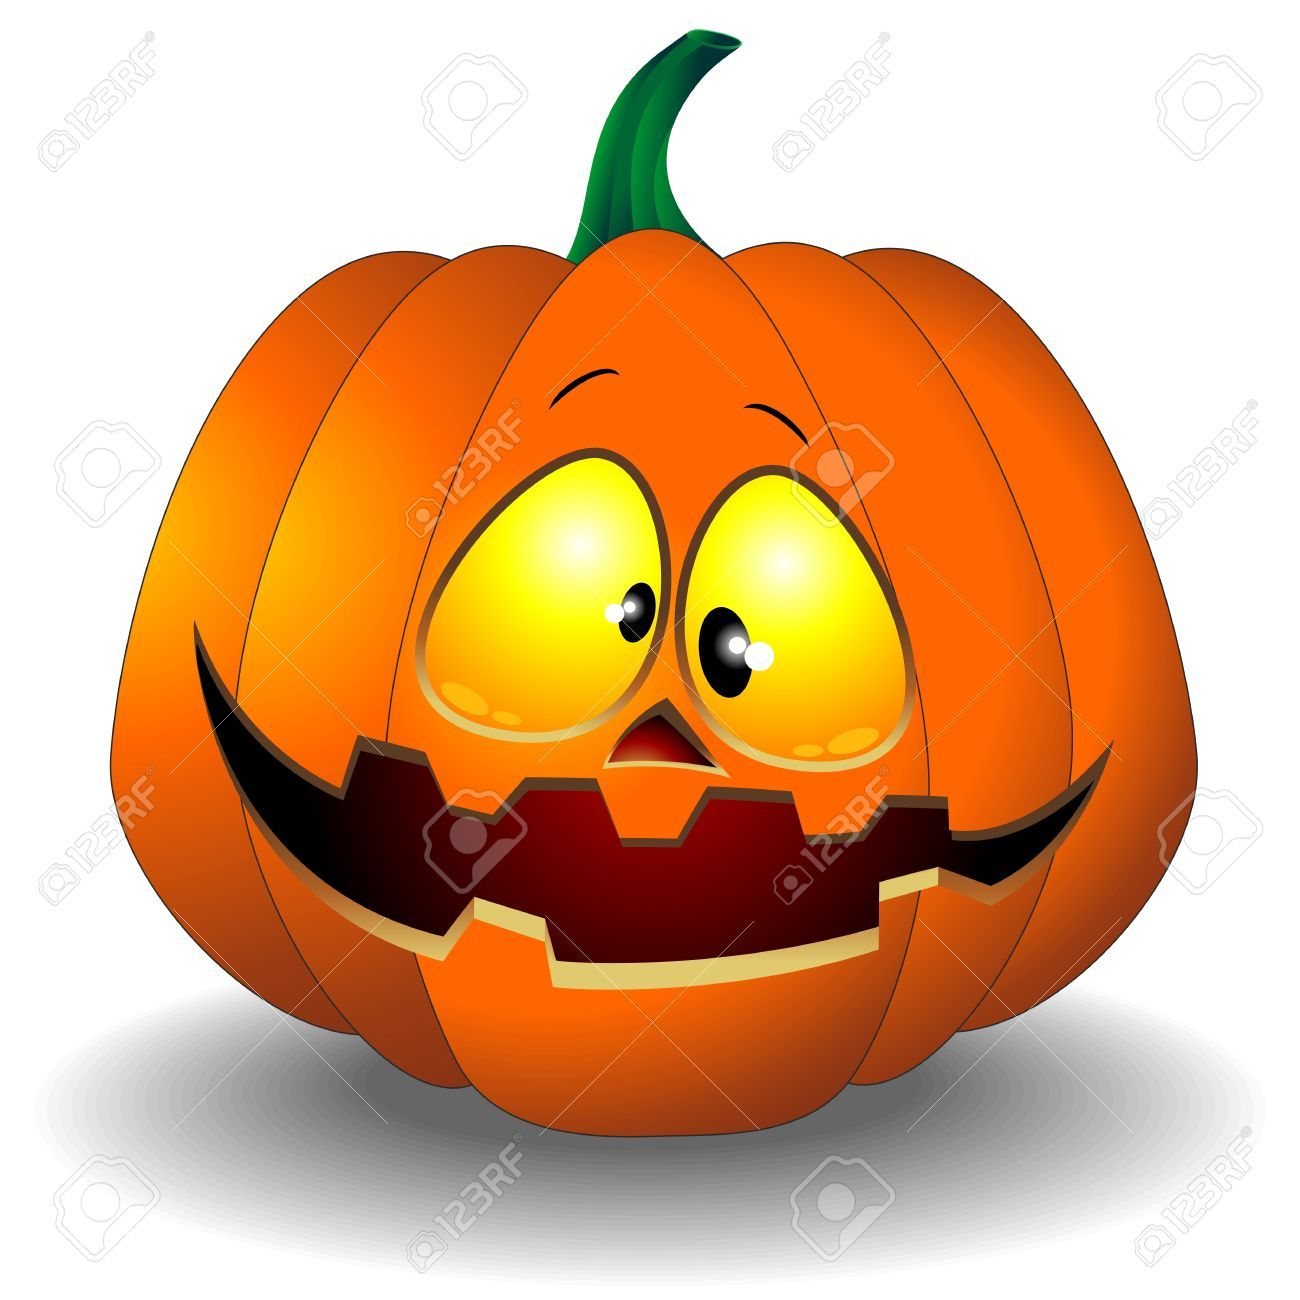 Stock Vector (With images) Halloween pumpkins, Halloween